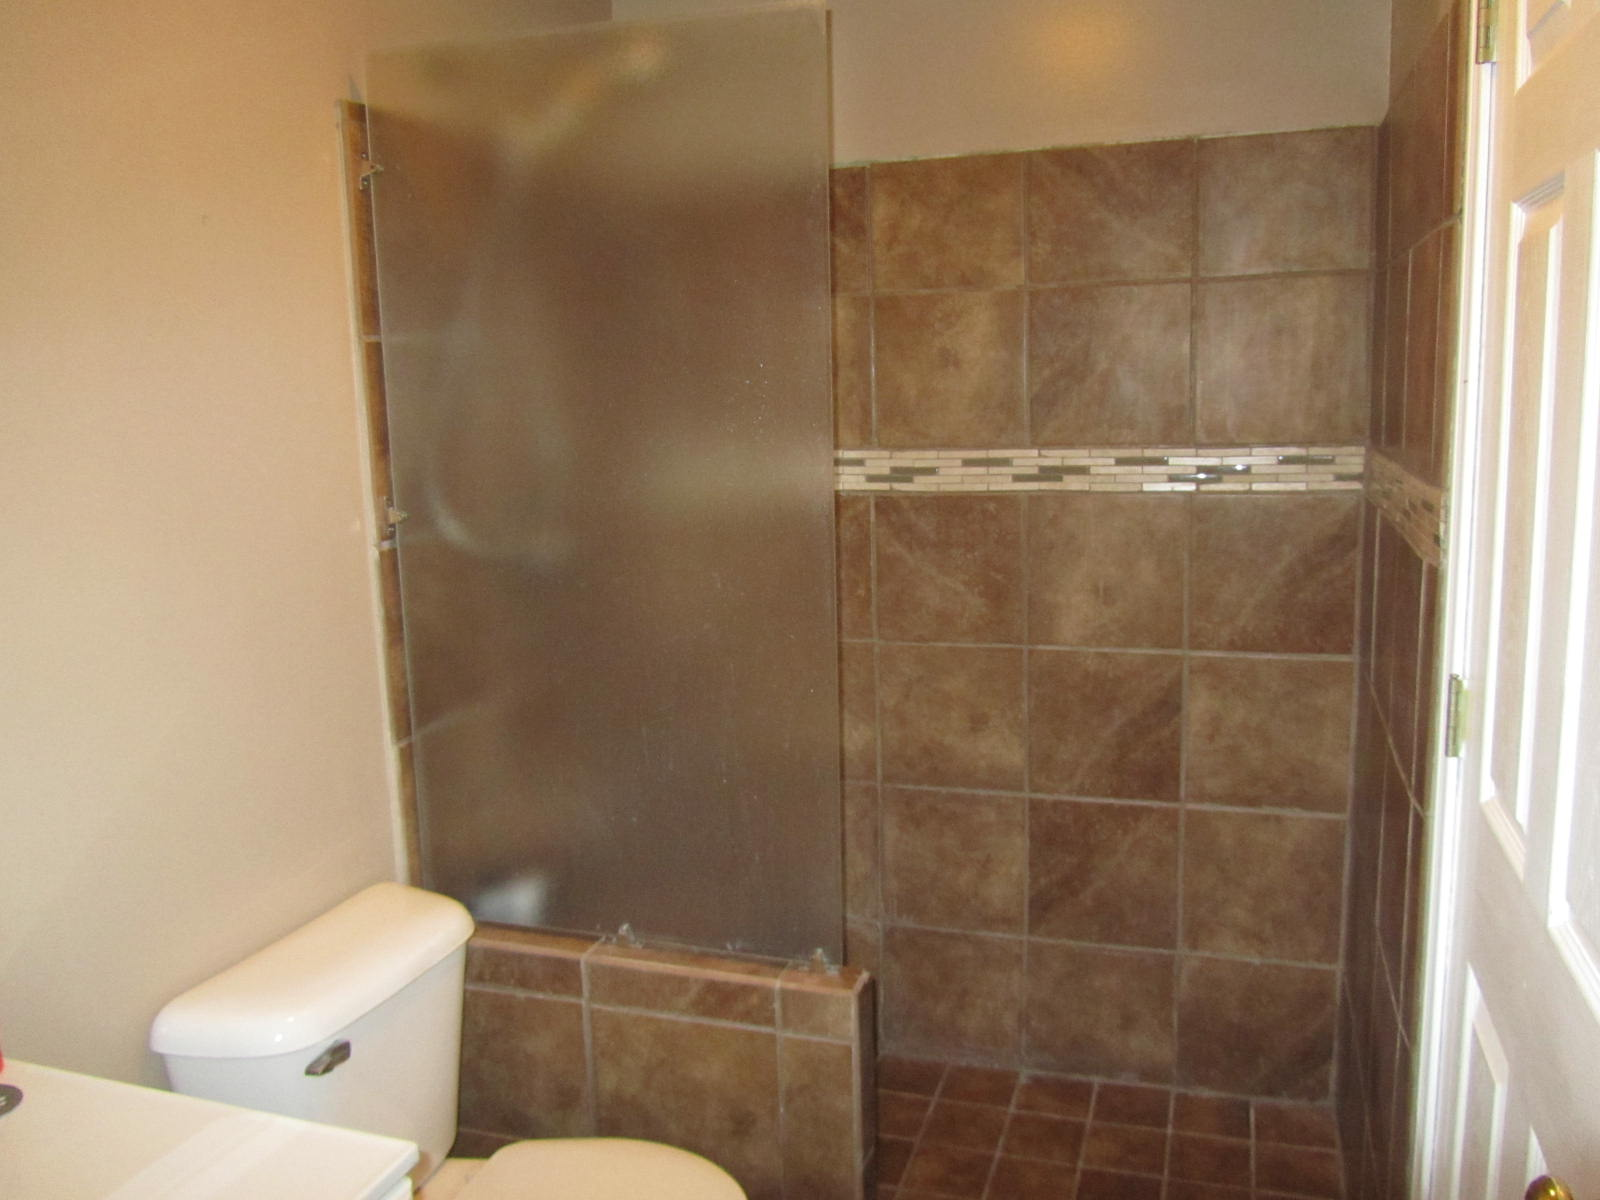 tile shower | The Unhinged Home